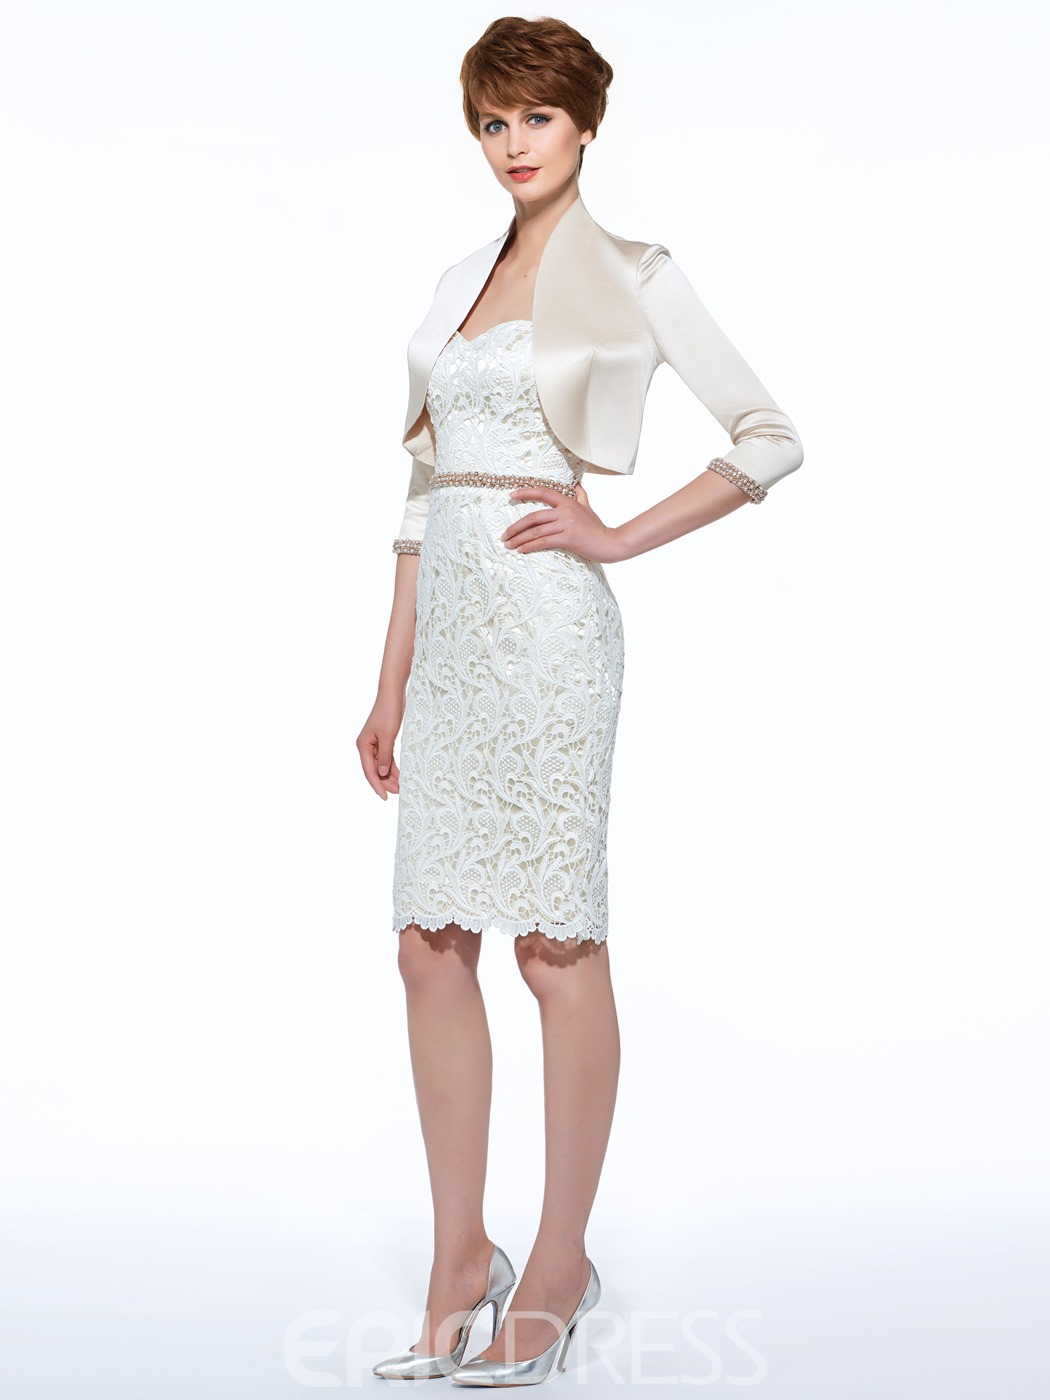 Ericdress Pearl Lace Sheath Mother Of The Bride Dress With Jacket